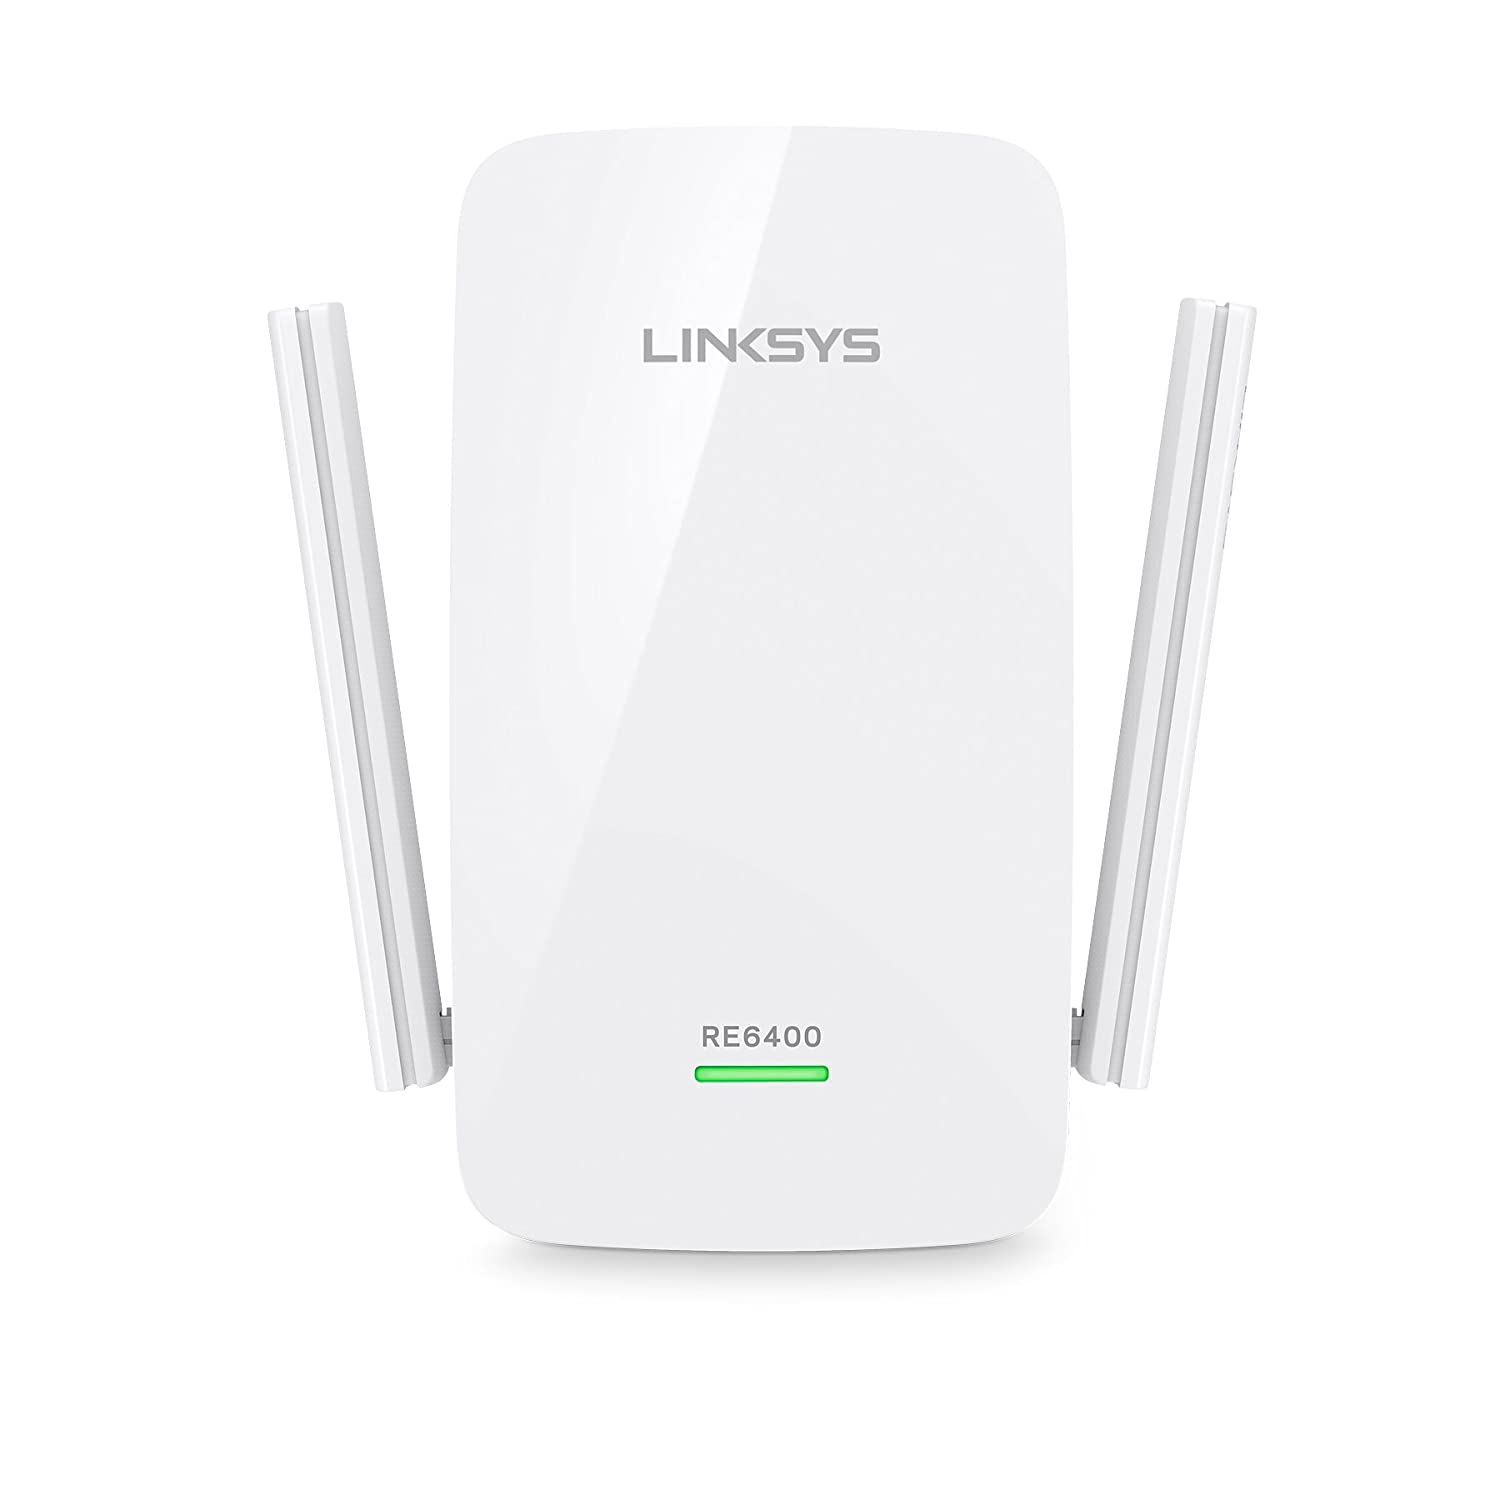 Linksys RE6400-EU - Extensor de Red Wi-Fi AC1200 Boost EX (N300 + AC867 Mbps, Spot Finder, Doble Banda, Cross-Band, Beamforming, 1 Puerto Gigabit Ethernet), ...